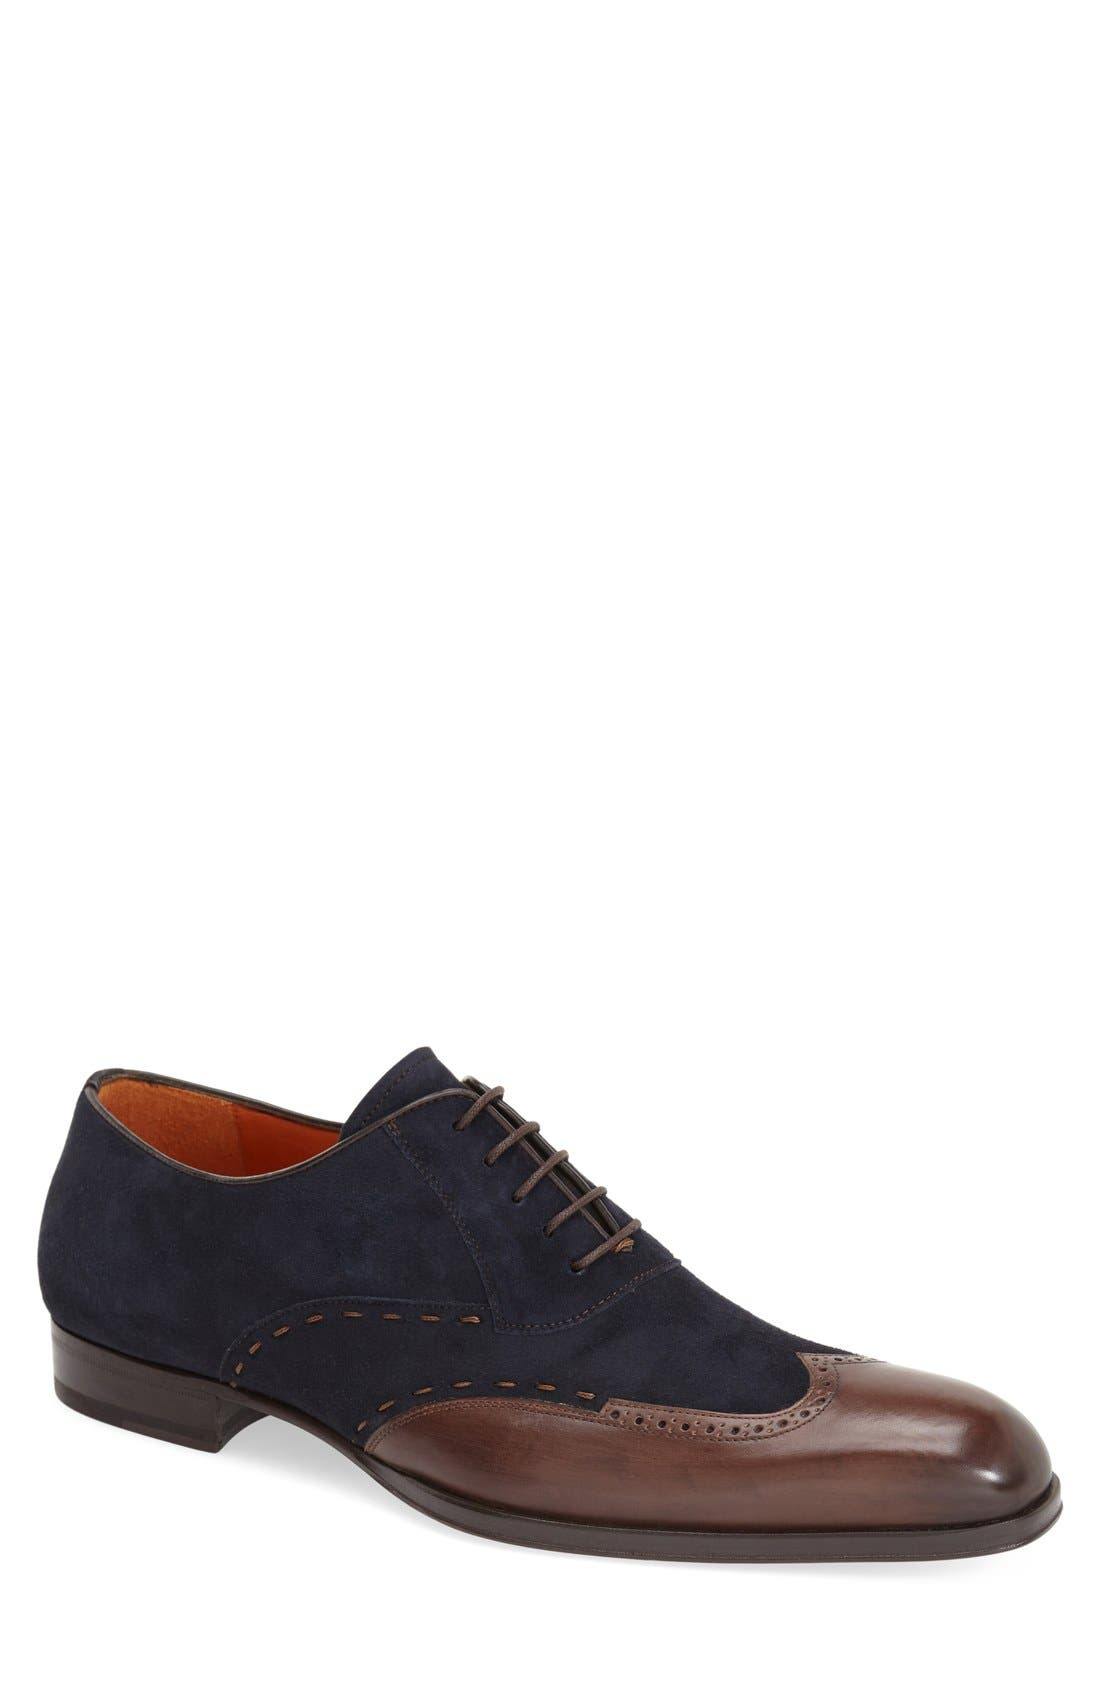 MEZLAN 'Ronda' Spectator Shoe in Dark Brown/ Navy